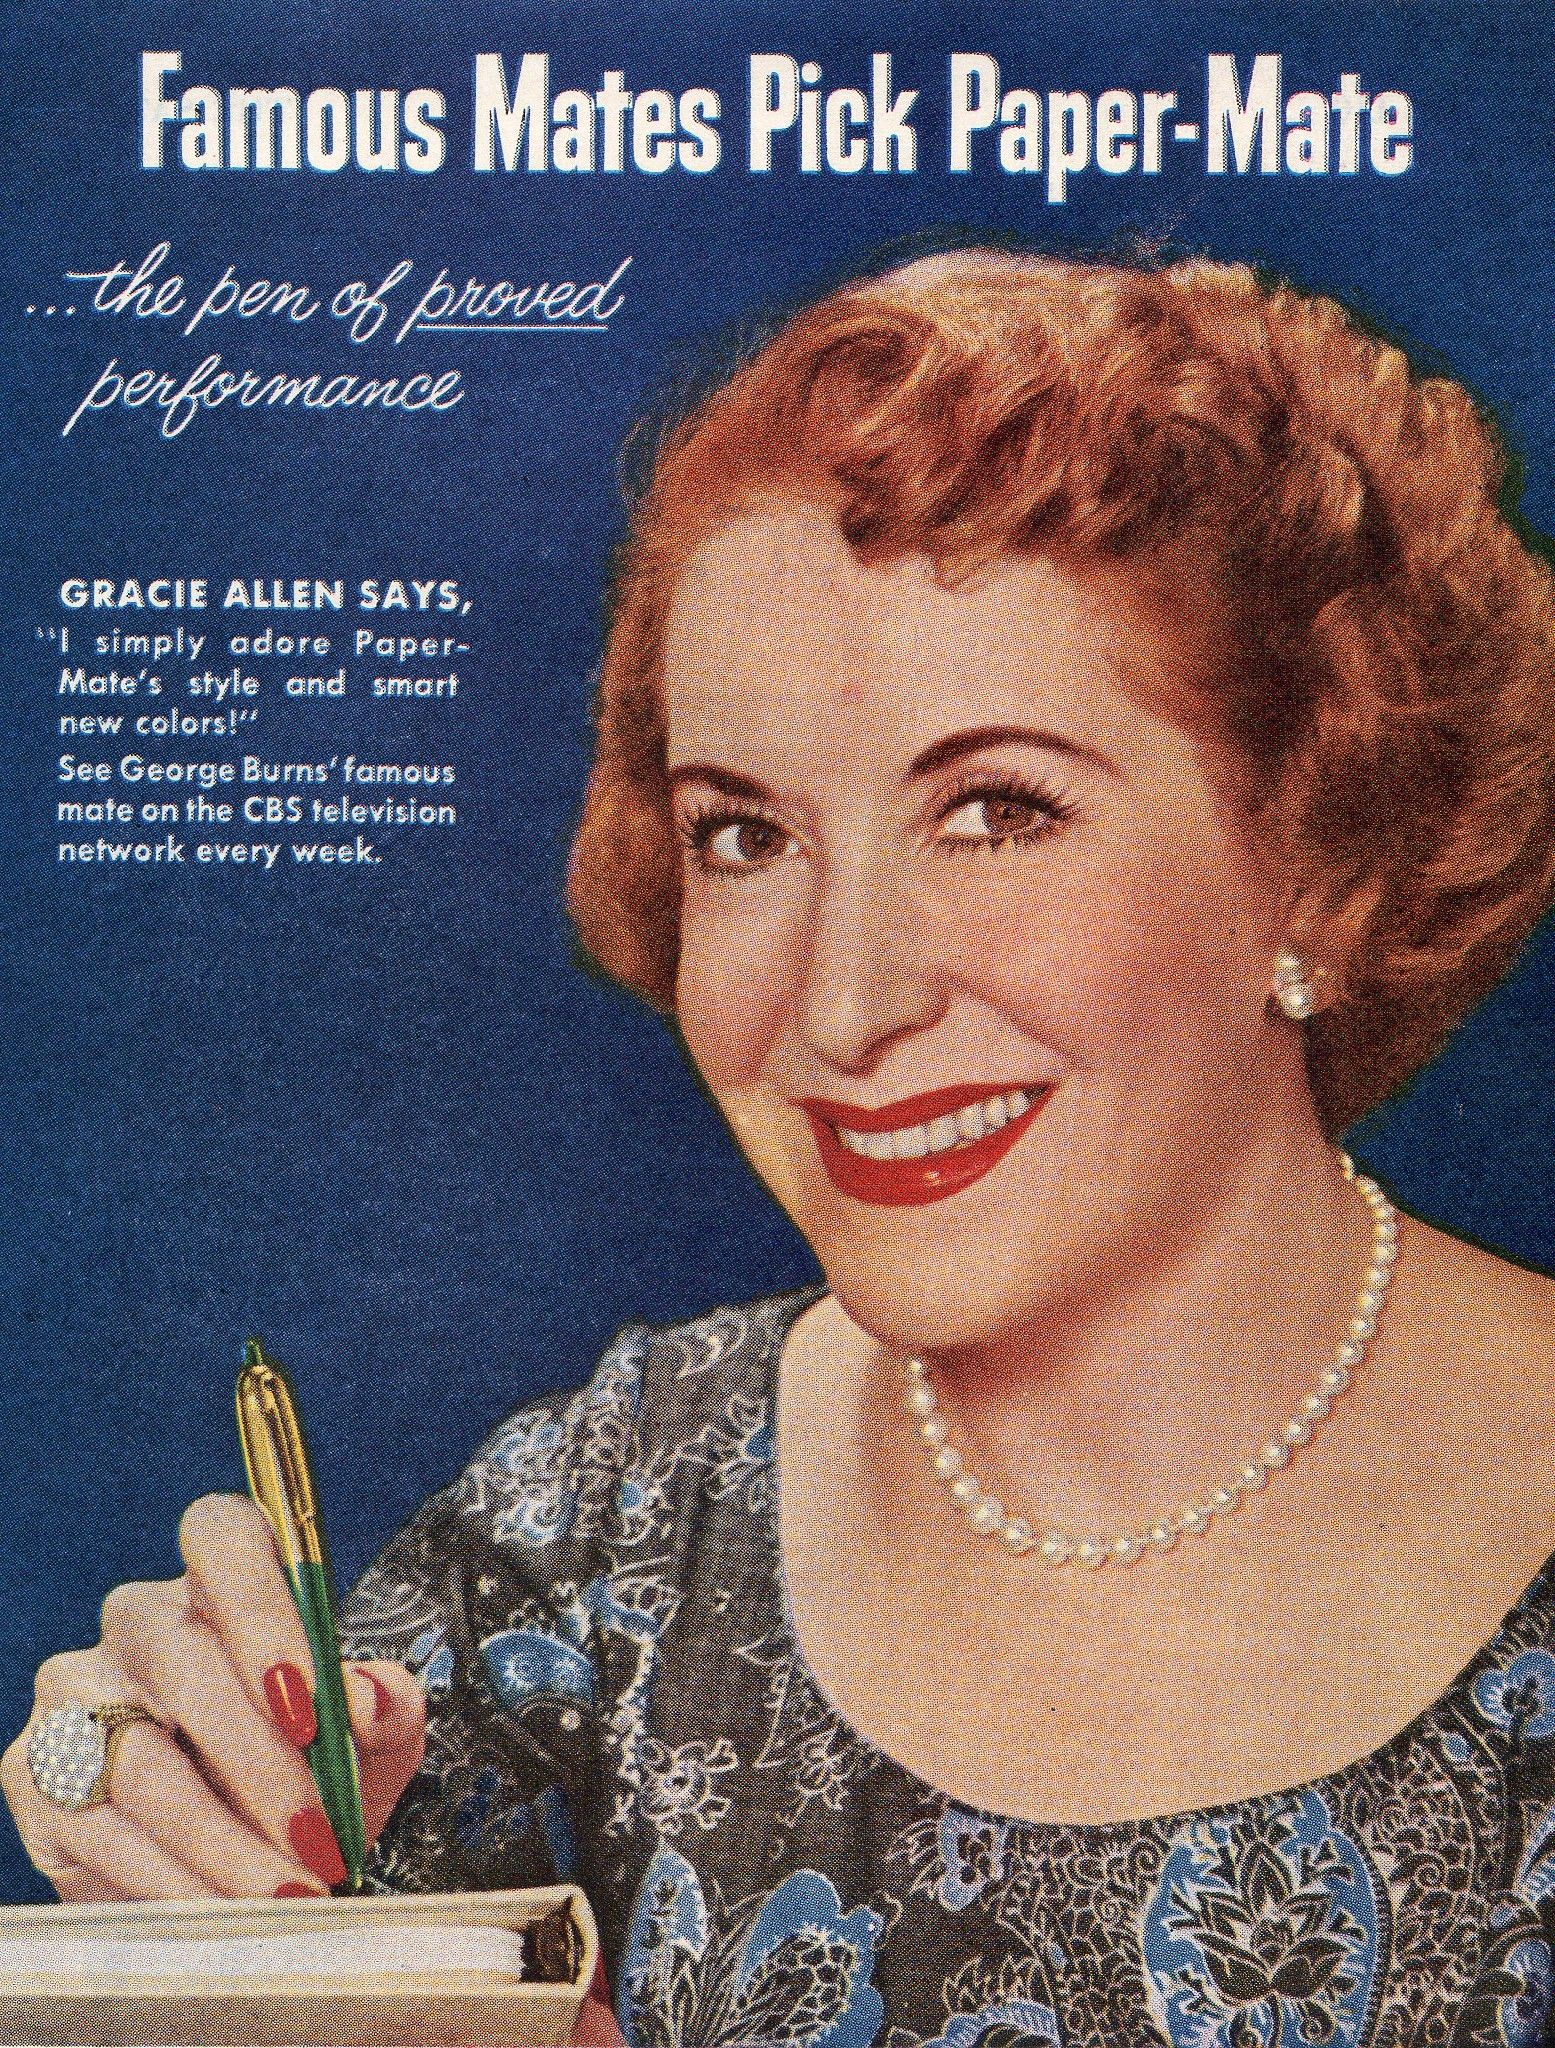 Gracie Allen Advertising For The Paper Mate Pin Her Jewelry Is Outstanding Her Beauty Her Jewelry Her Vintage Ads Paper Mate Pens Vintage Advertisements